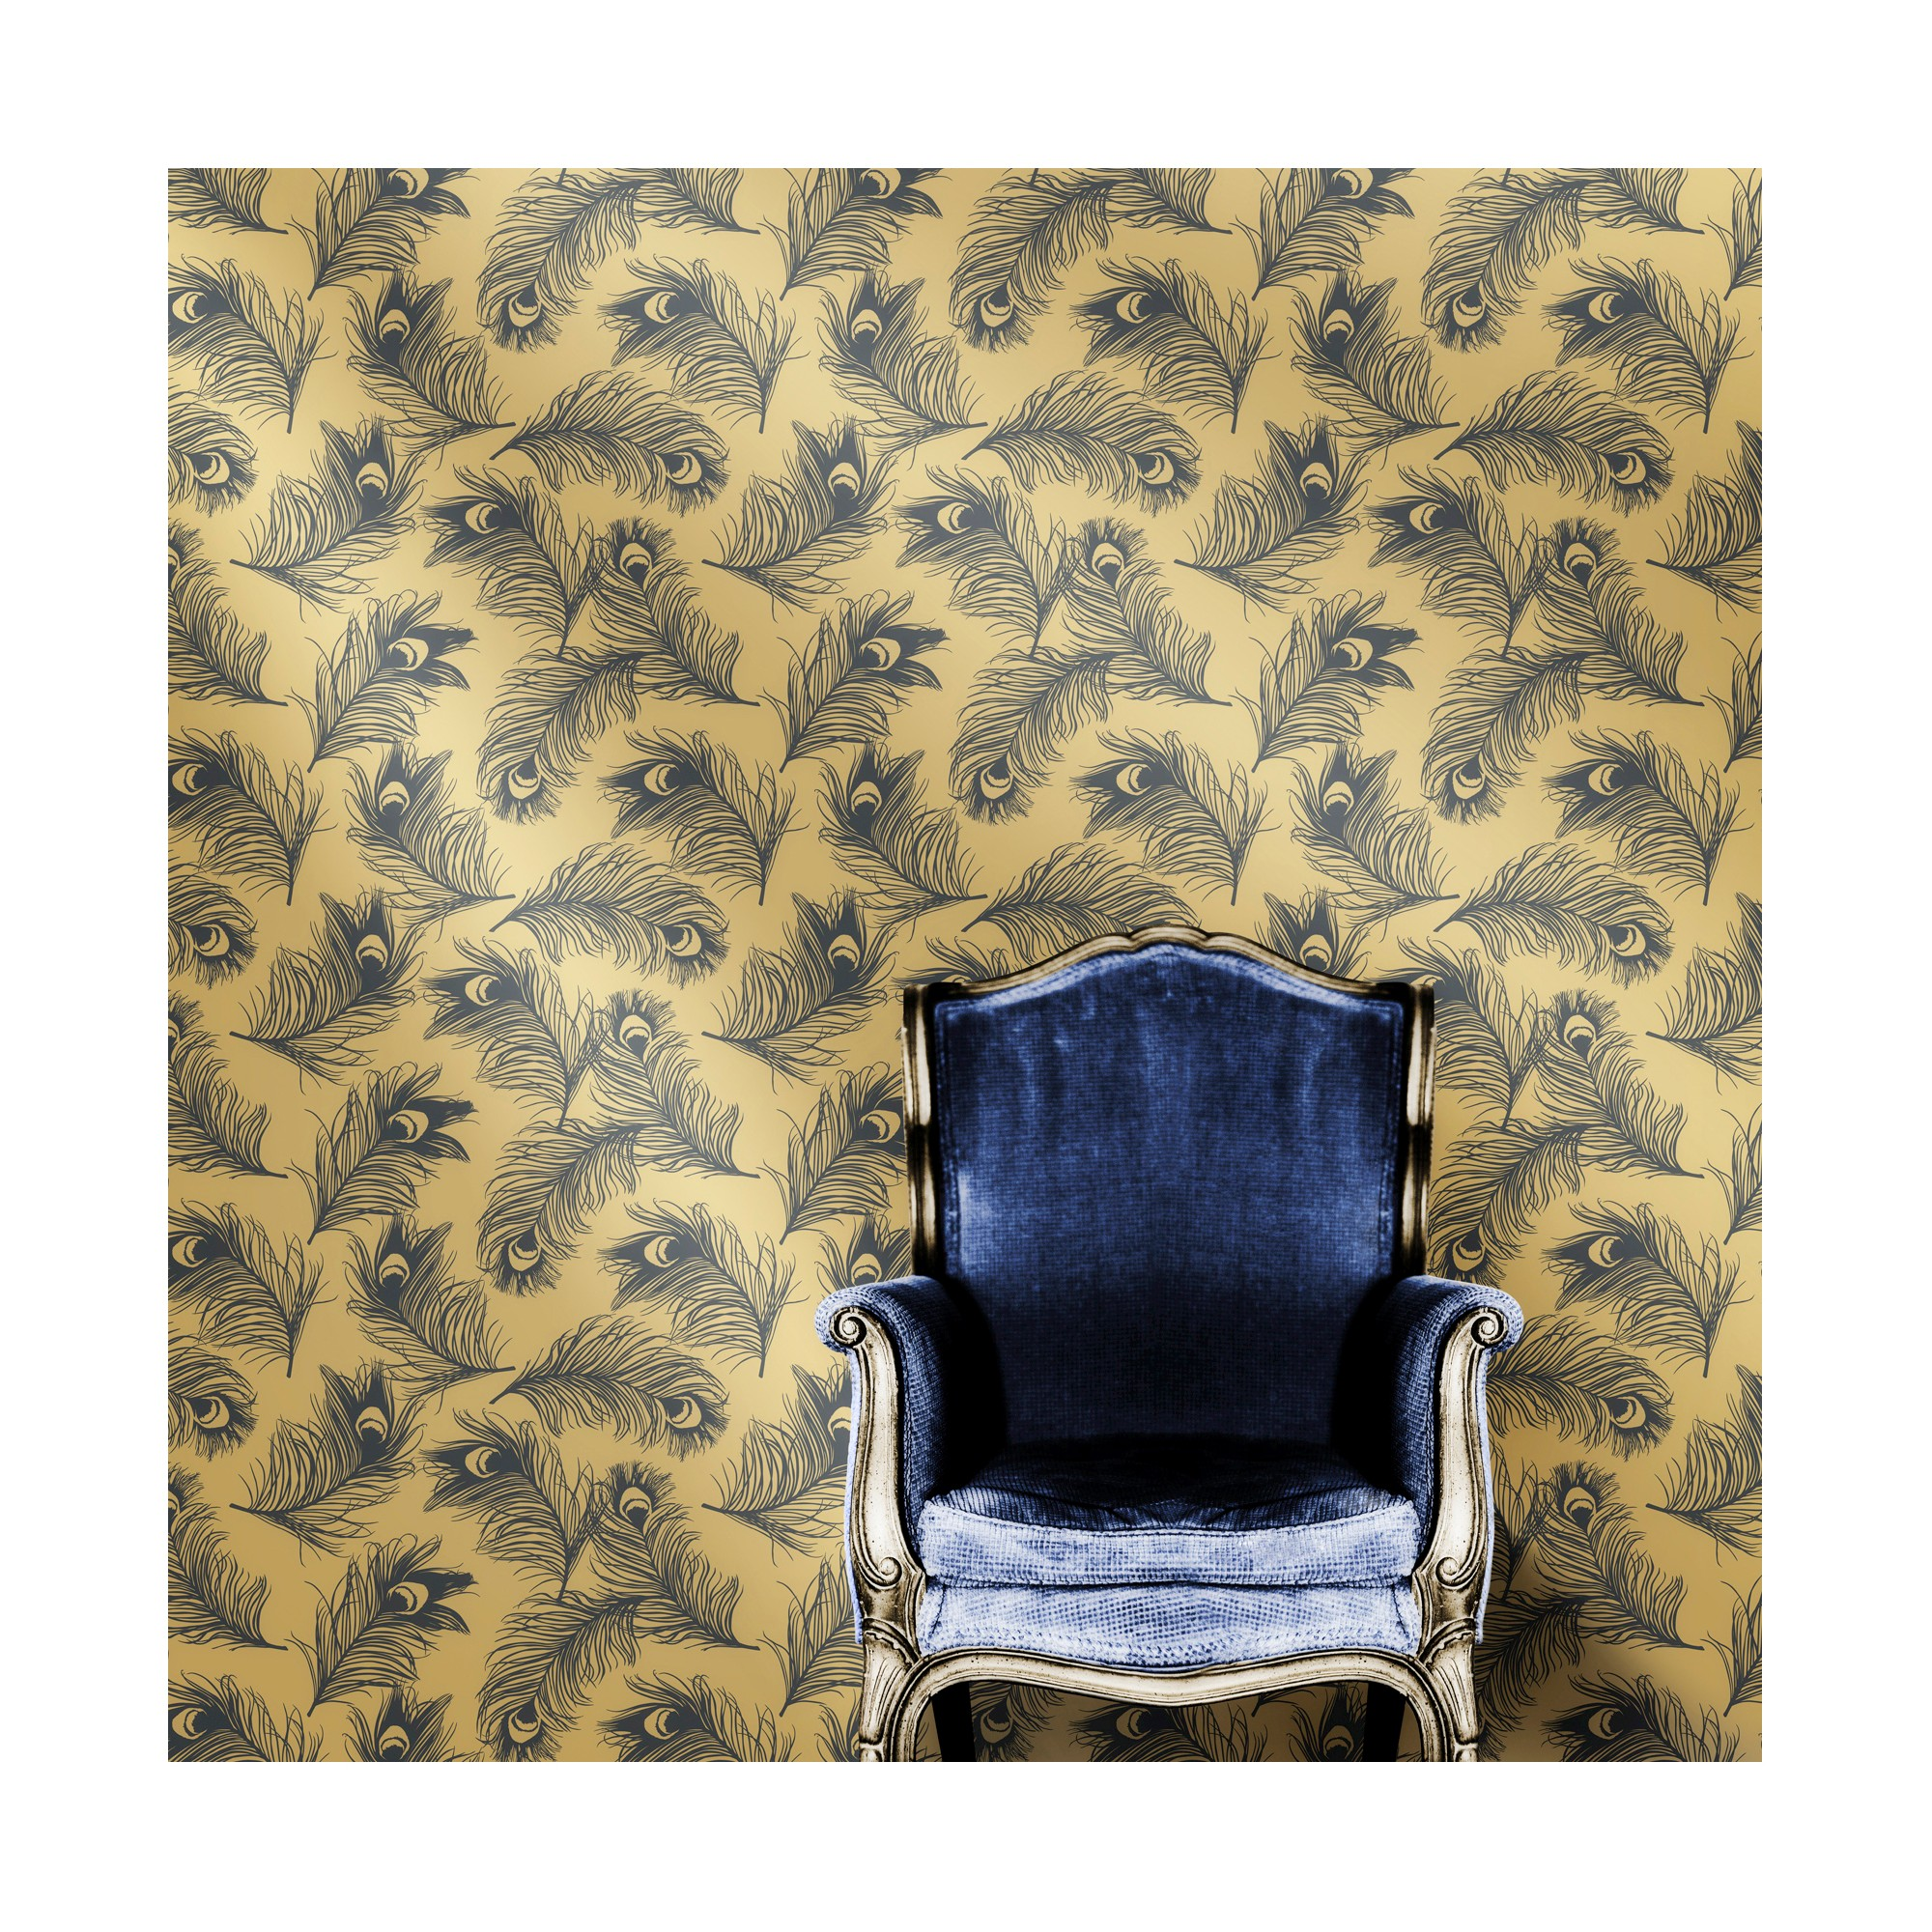 Tempaper Feathers Self Adhesive Removable Wallpaper Twilight